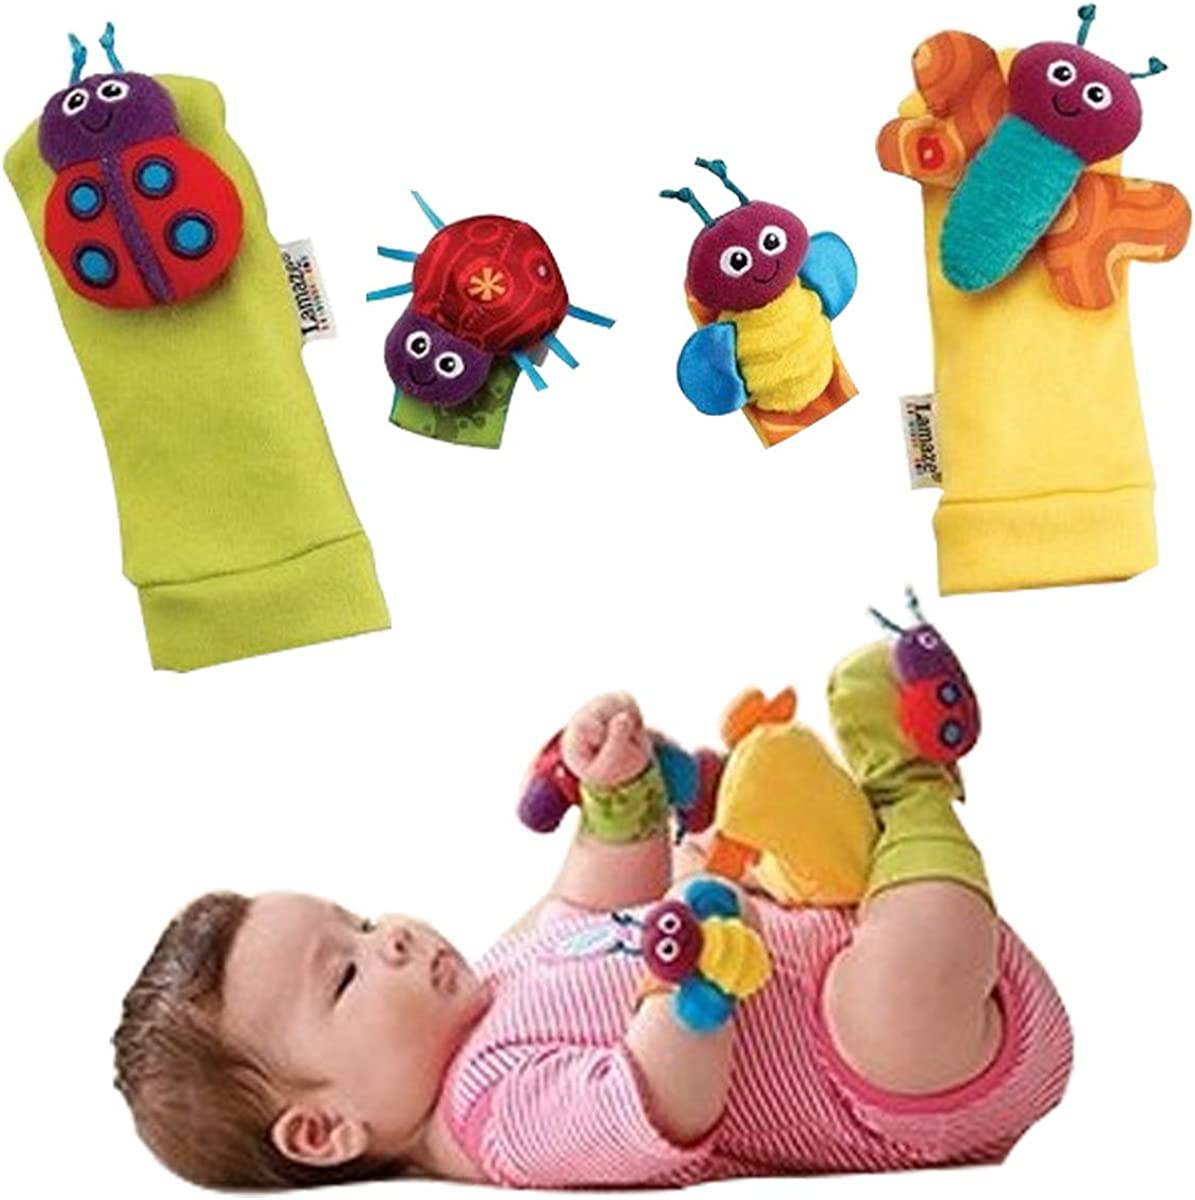 TINTAO Baby Socks Toys Wrist Rattles And Foot Finders Ankle Socks Lady Bugs Set 4 Pcs, CS02